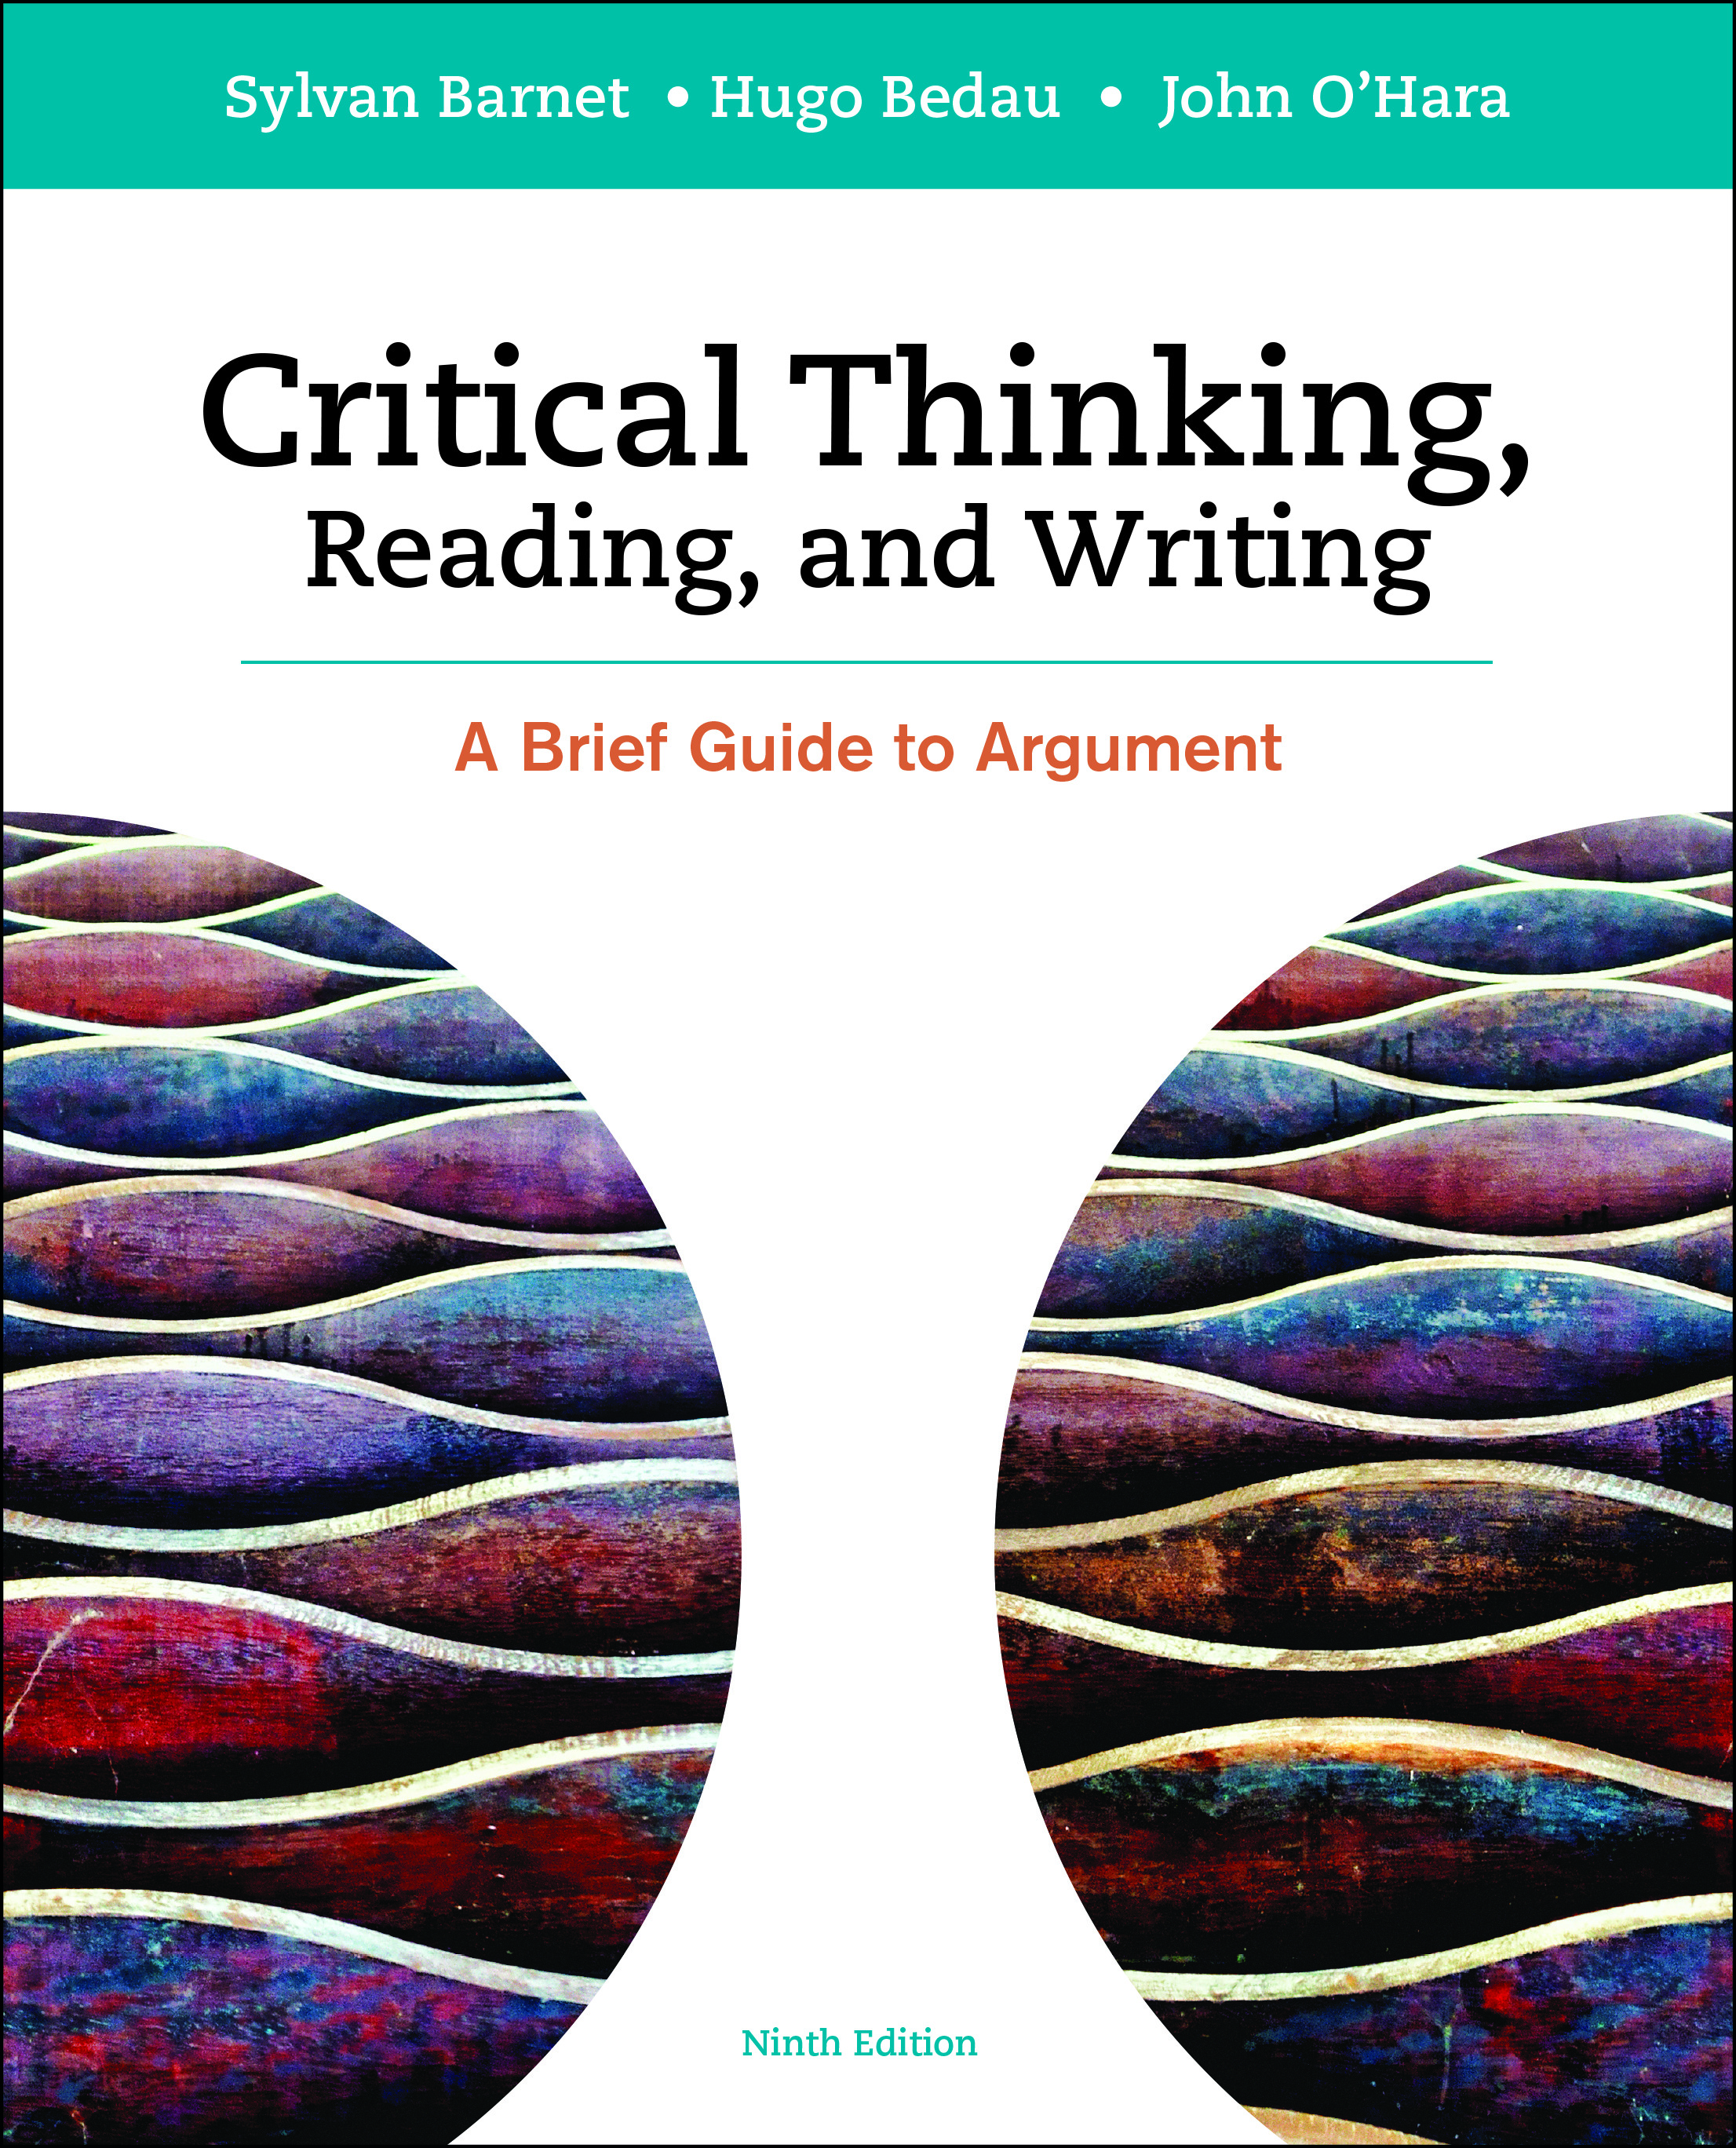 reading and writing for critical thinking Critical thinking, reading and writing critical reading: a guide (a guide designed for his year 1 students by professor john lye critical reading: what is critical reading, and why do i need to do it.